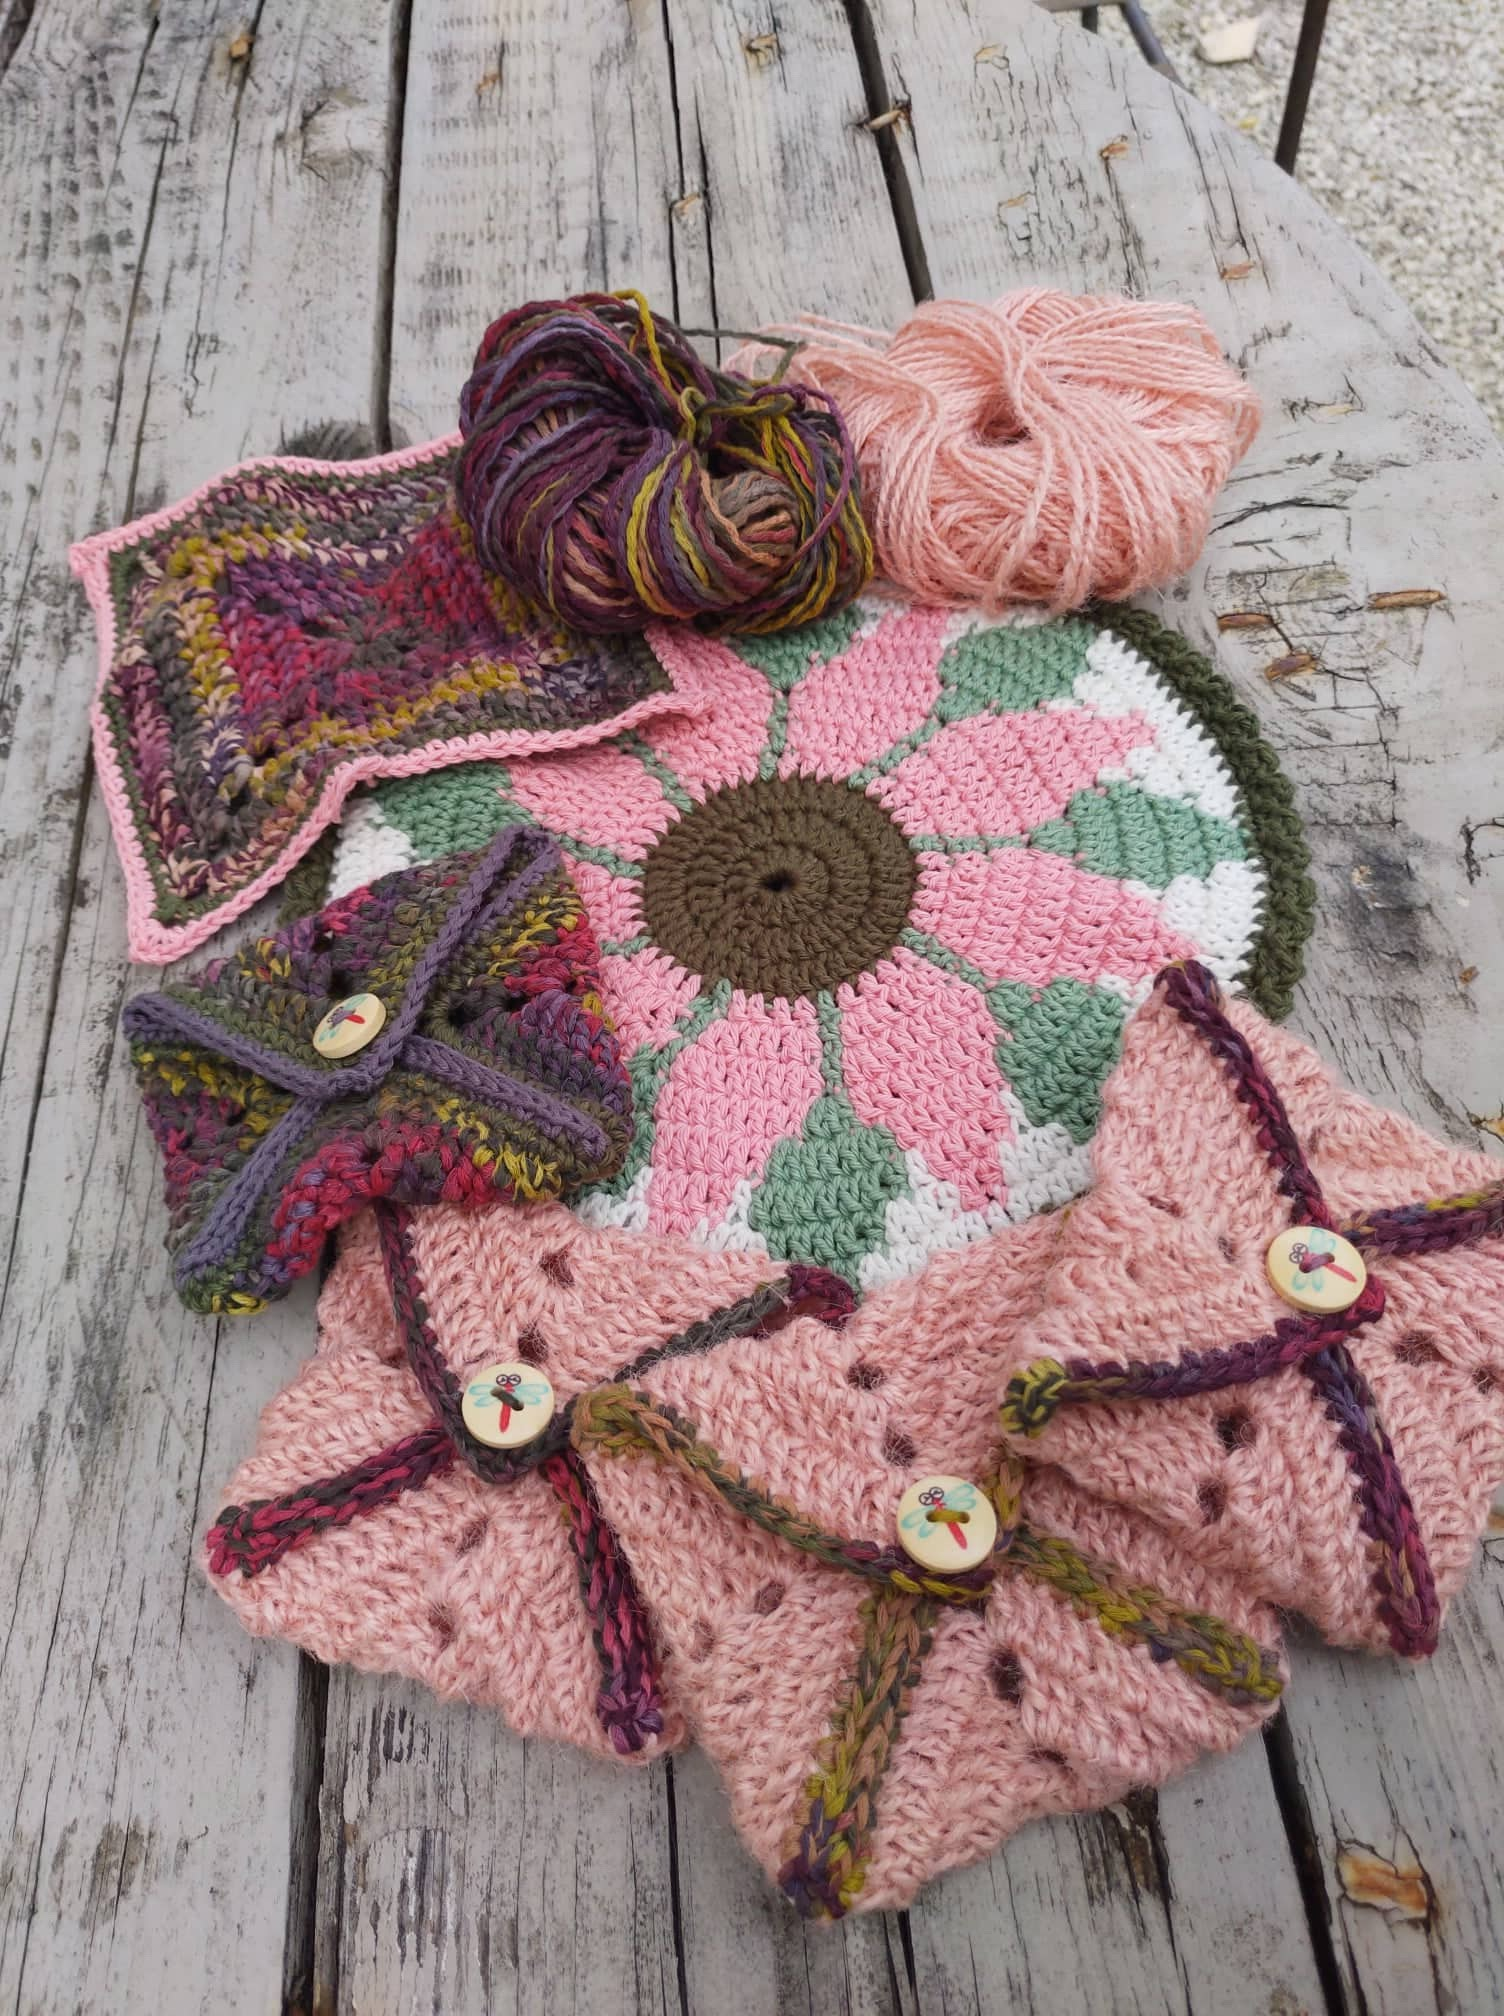 More knitting and crochet projects from the June retreat